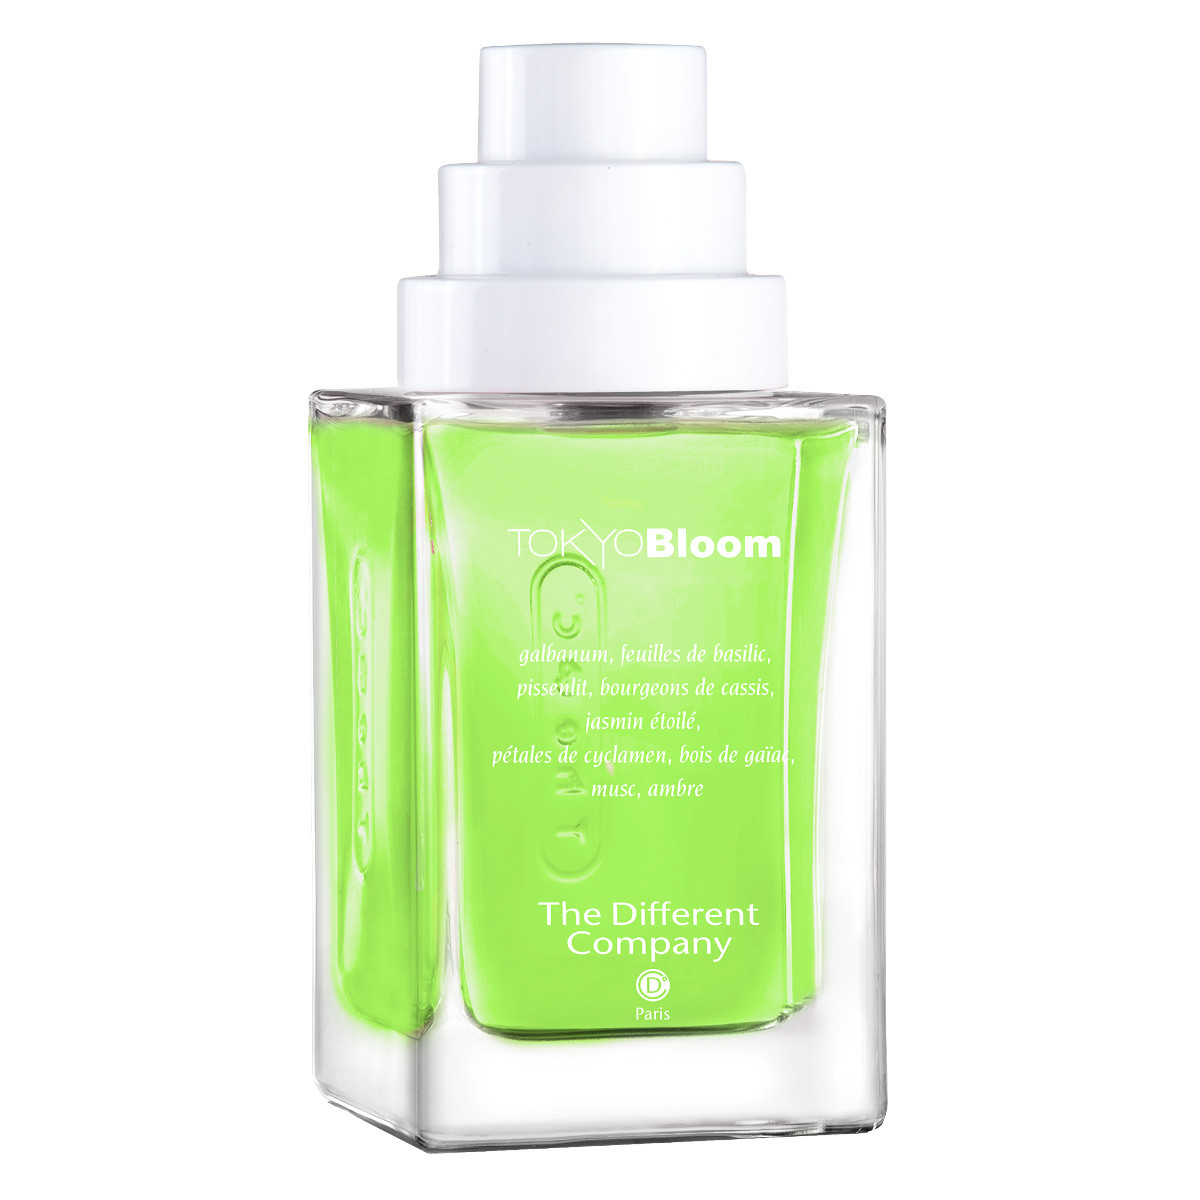 the-different-company-l-esprit-cologne-tokyo-bloom-eau-de-toilette-spray-duft